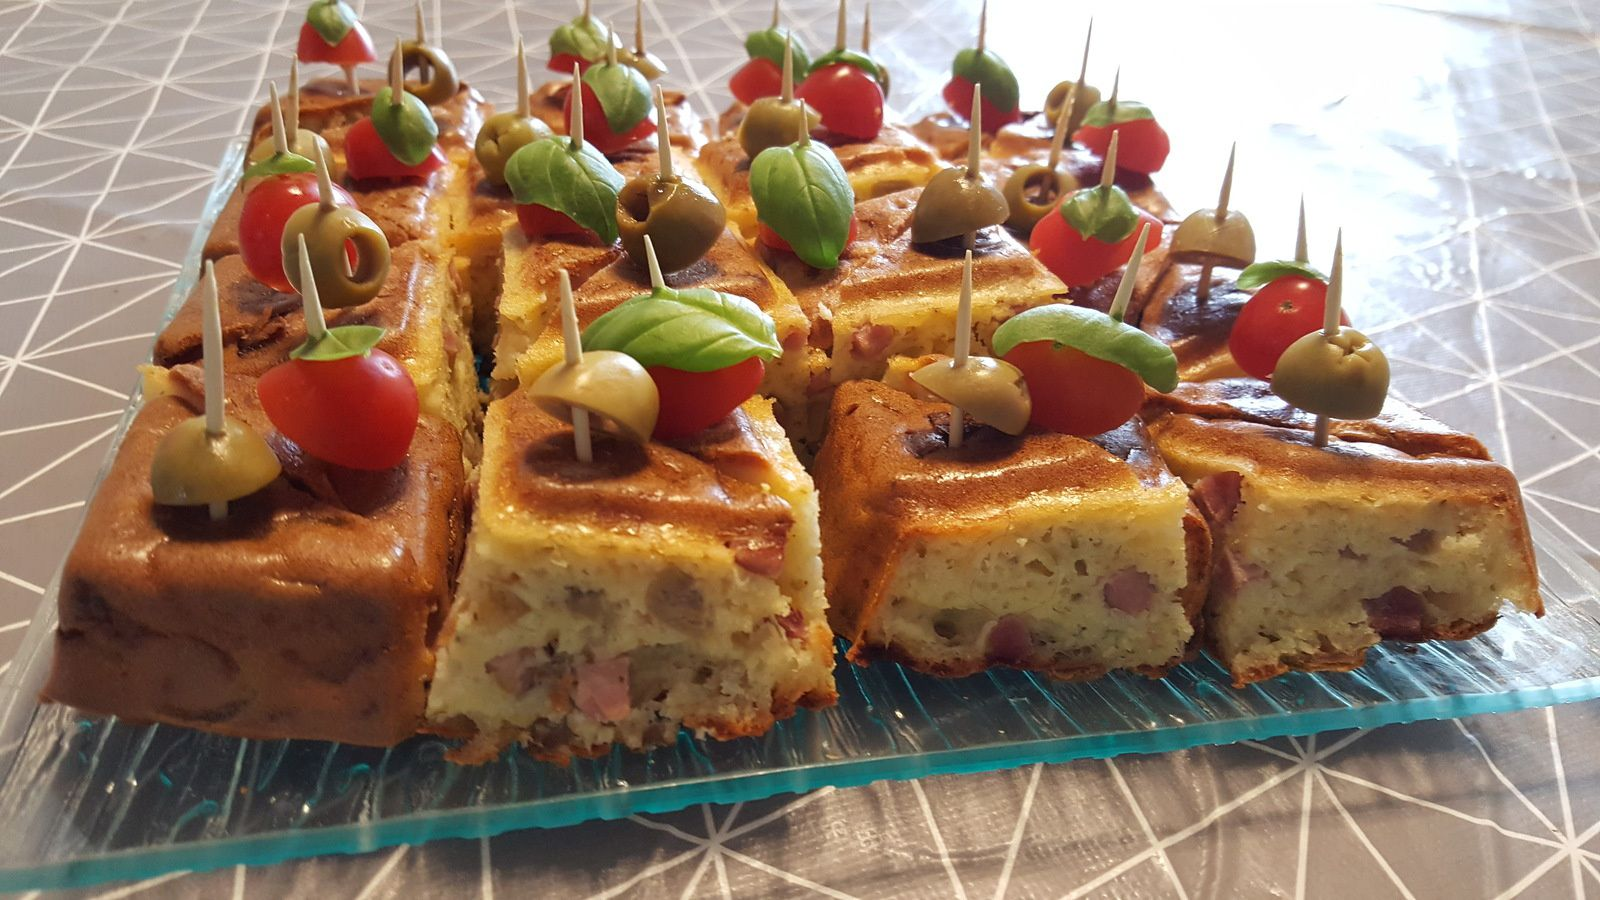 Cake salé jambon fromage, olive au Thermomix